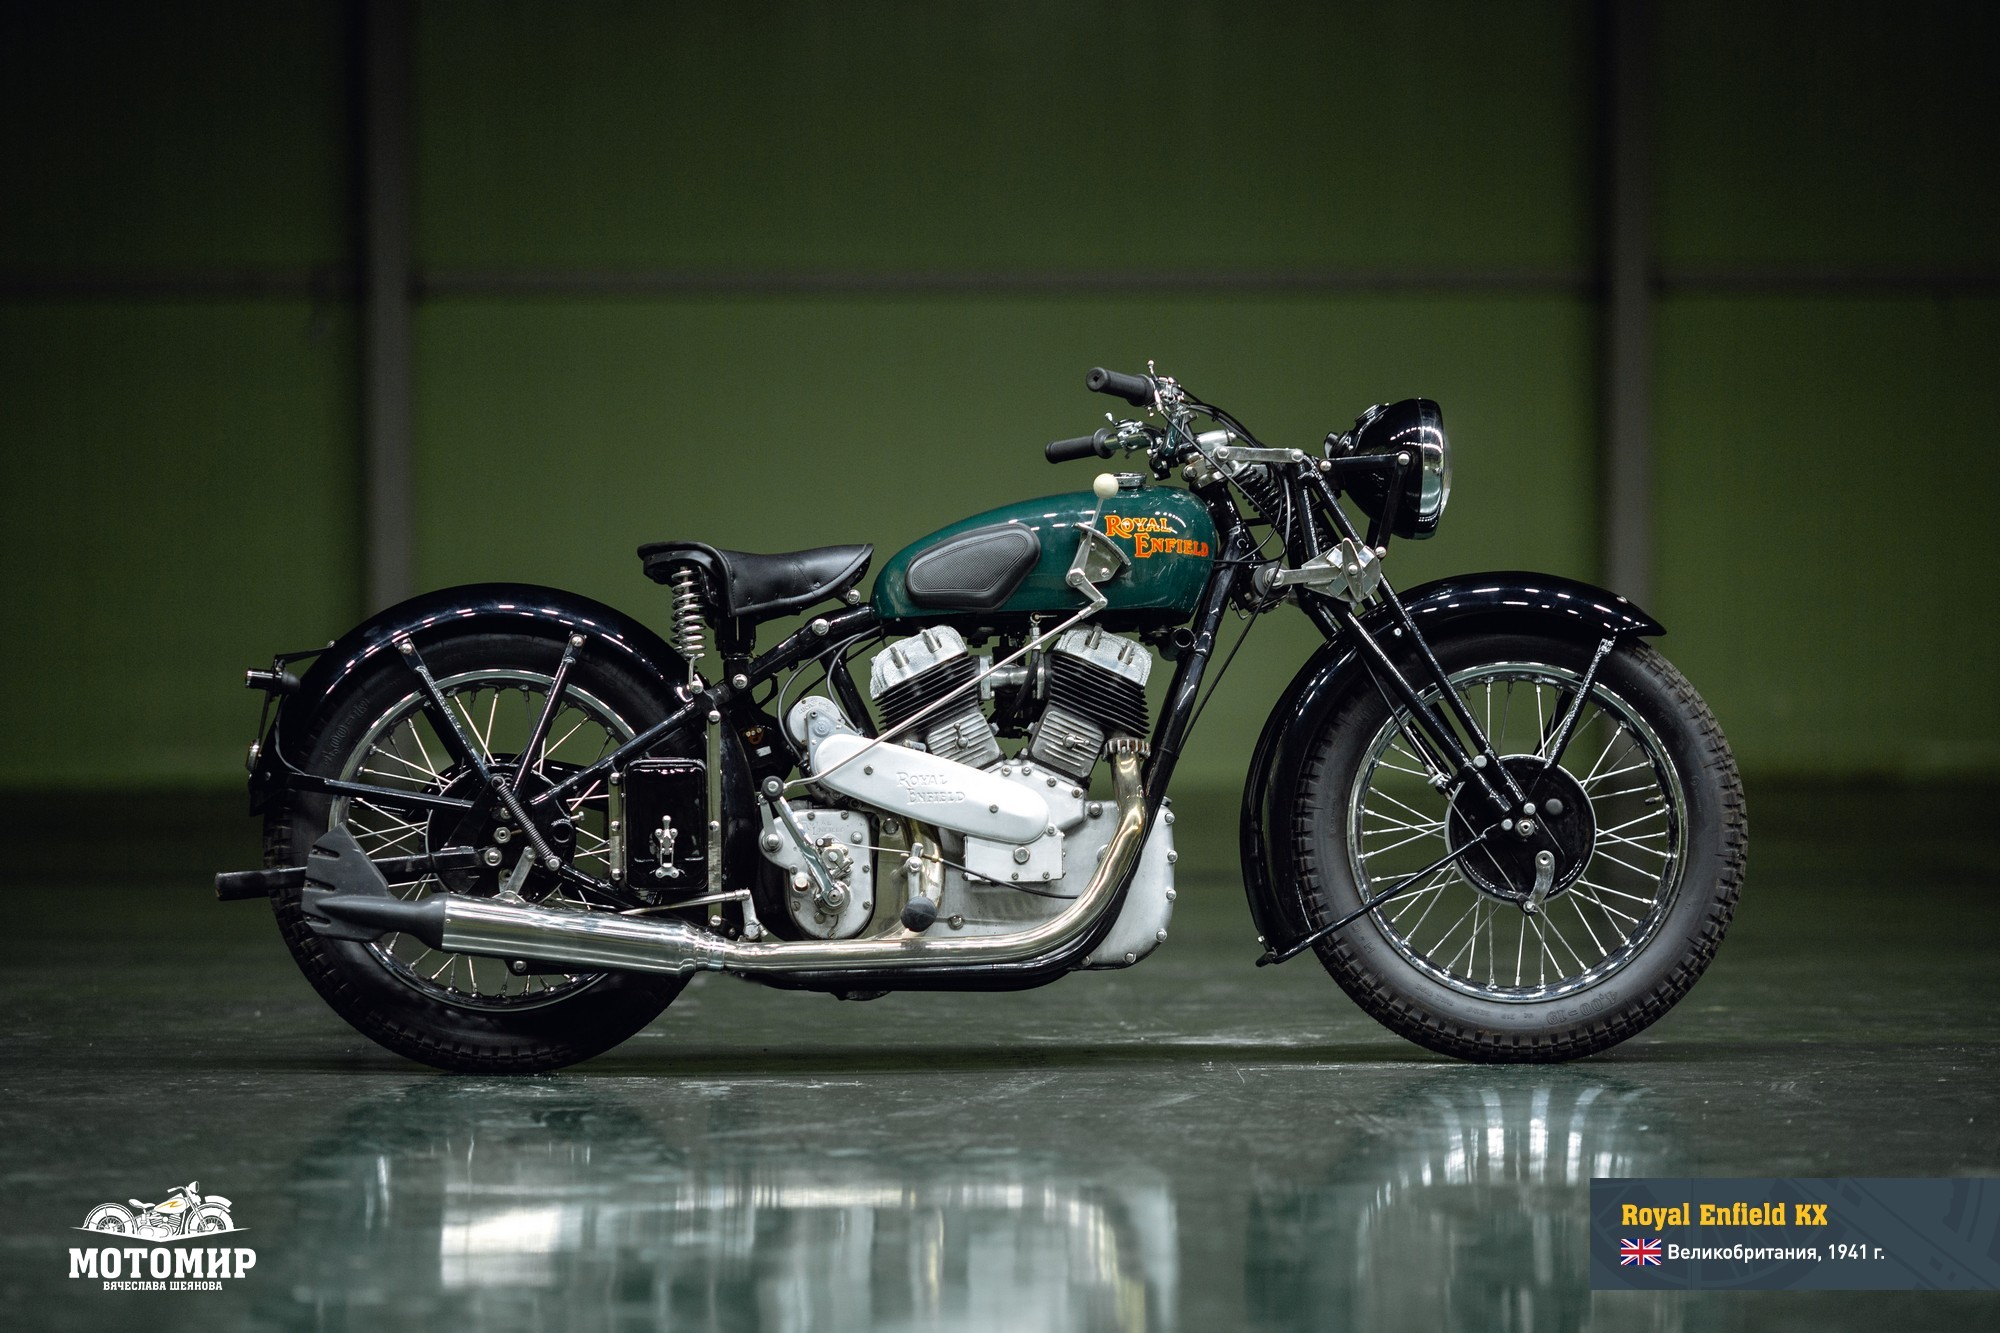 royal-enfield-kx-201601-web-05